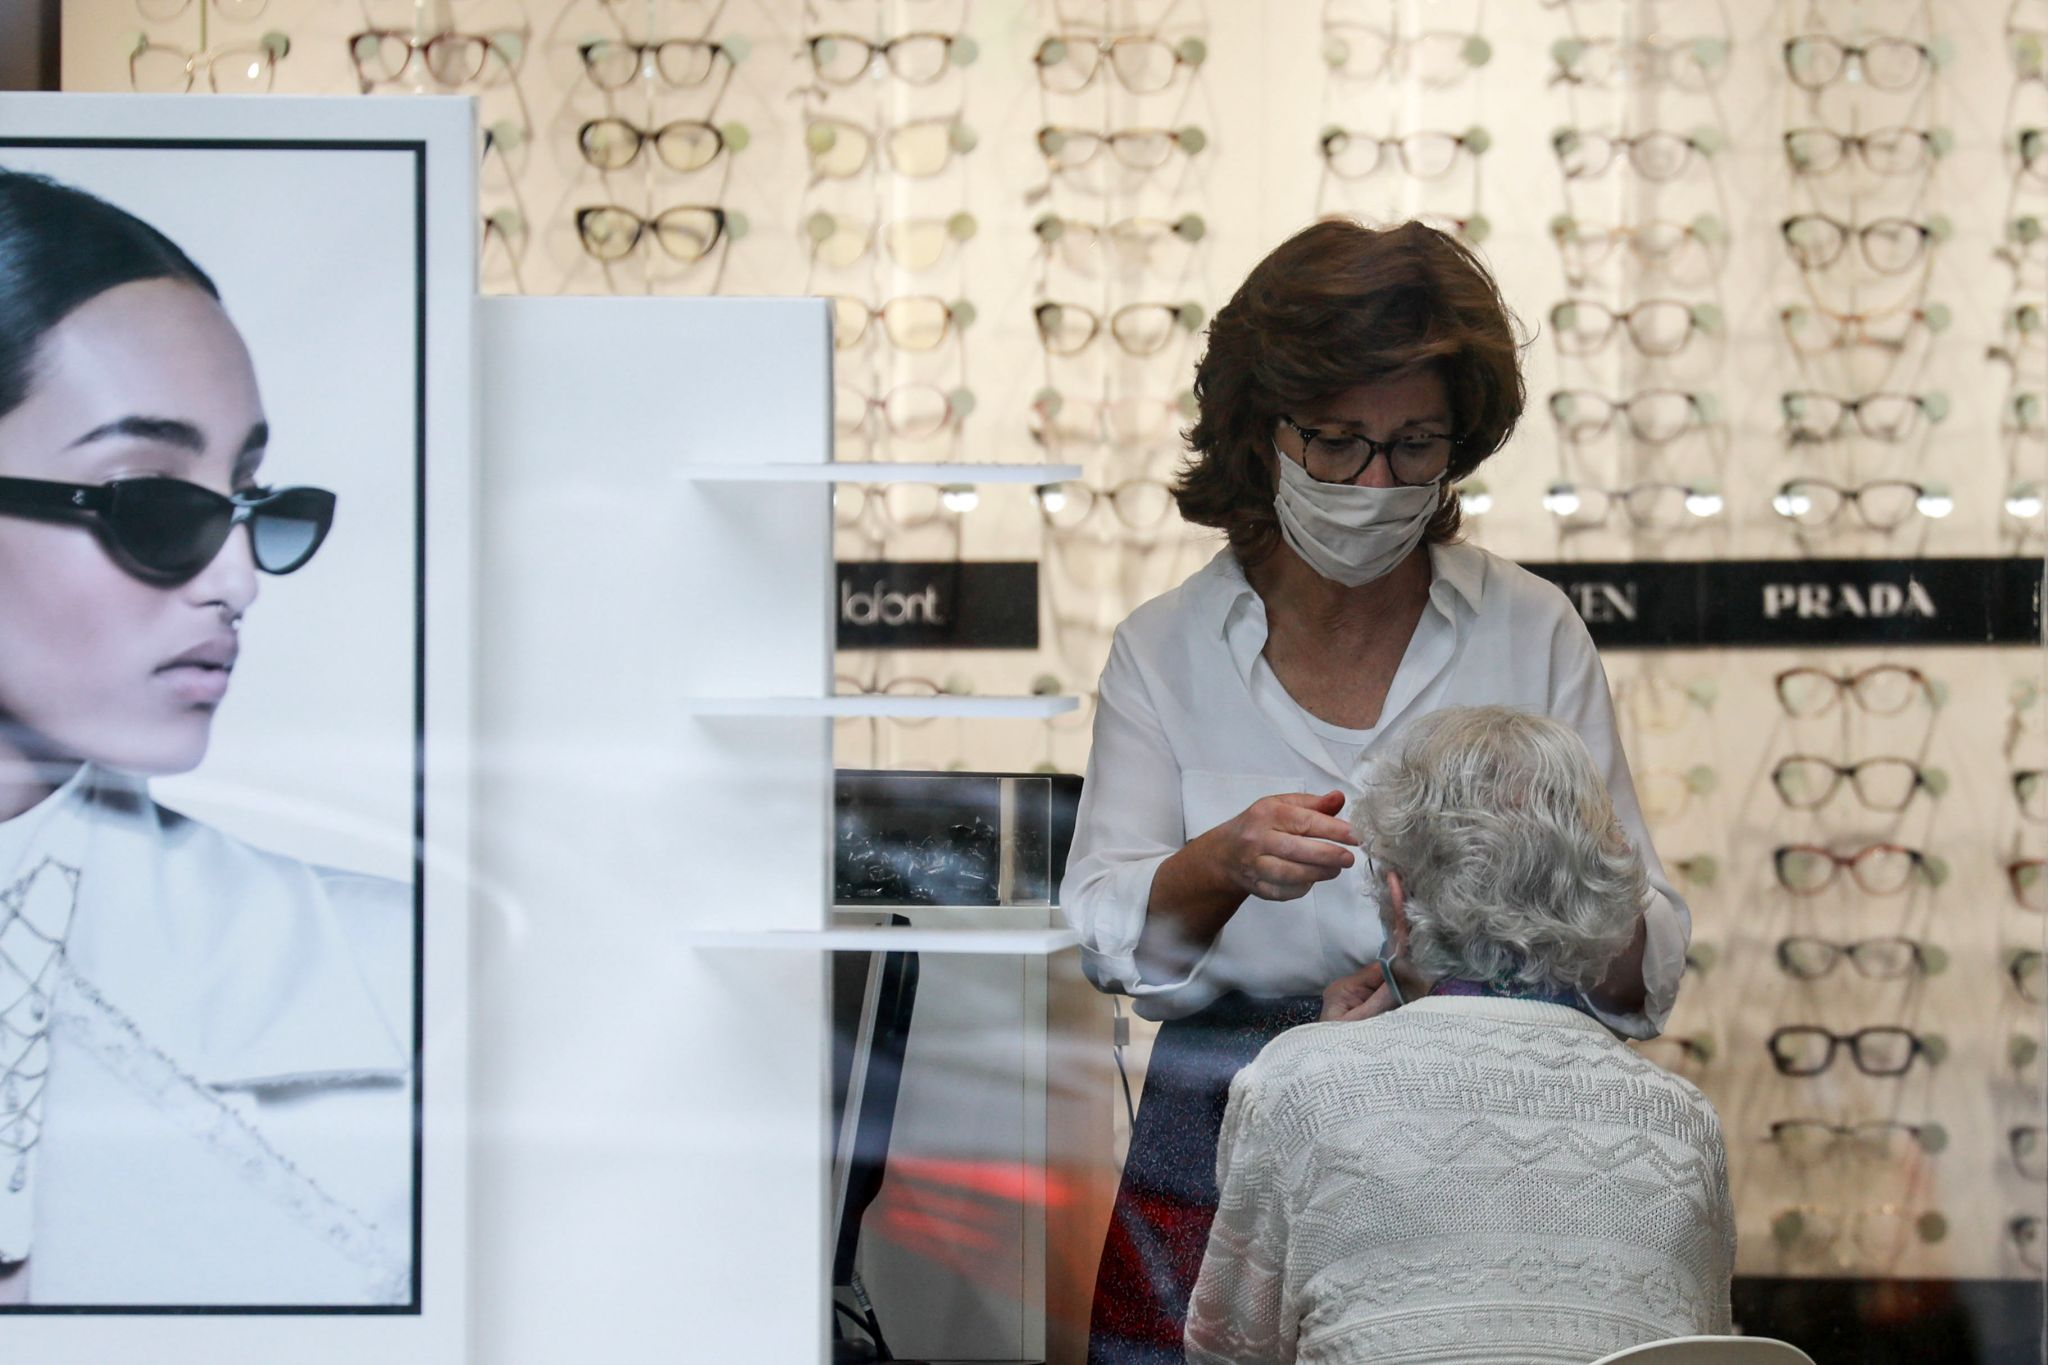 Could wearing eyeglasses lower your risk of catching COVID-19? One study says yes